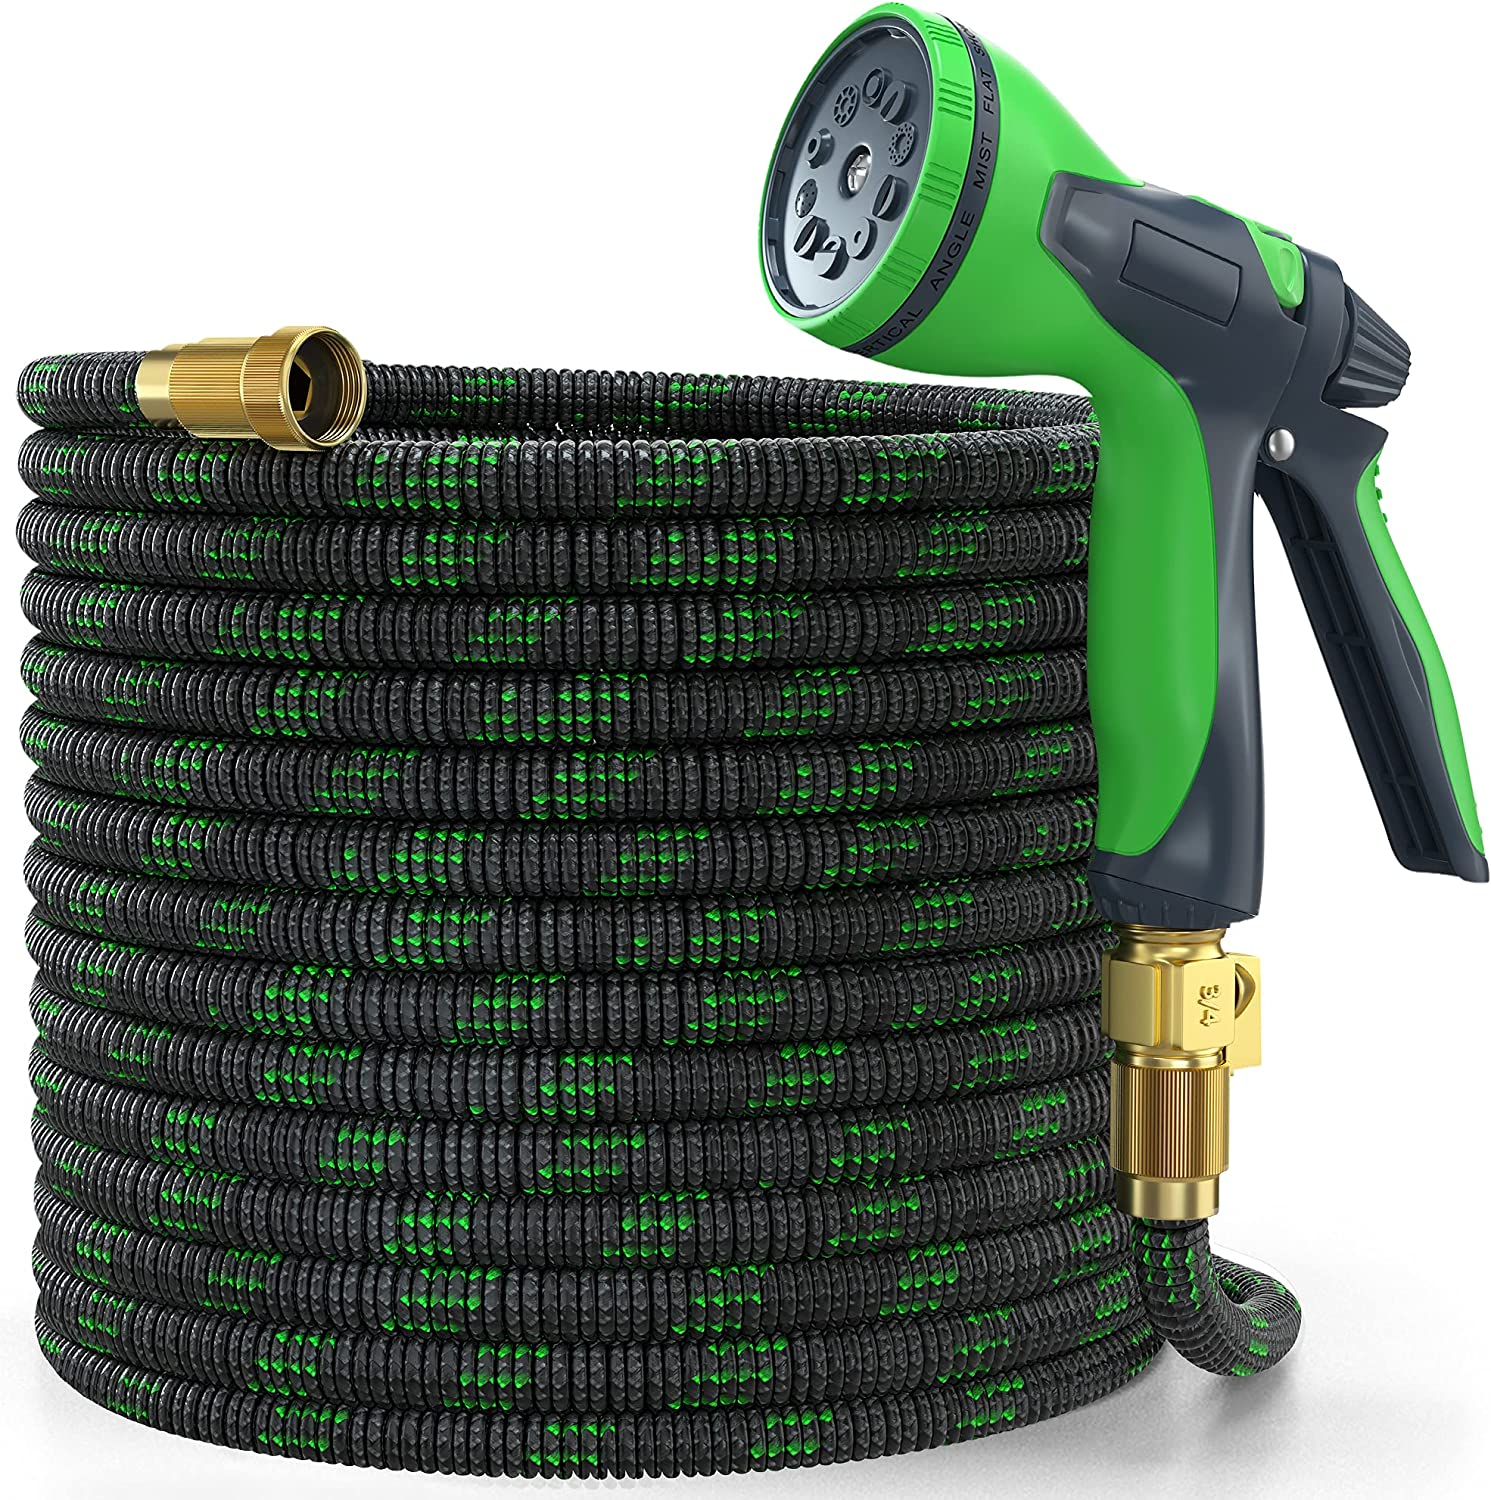 YEMMEN Garden Hose 50ft Expandable Water Hose with 10 Function Nozzle and Solid Brass Fittings